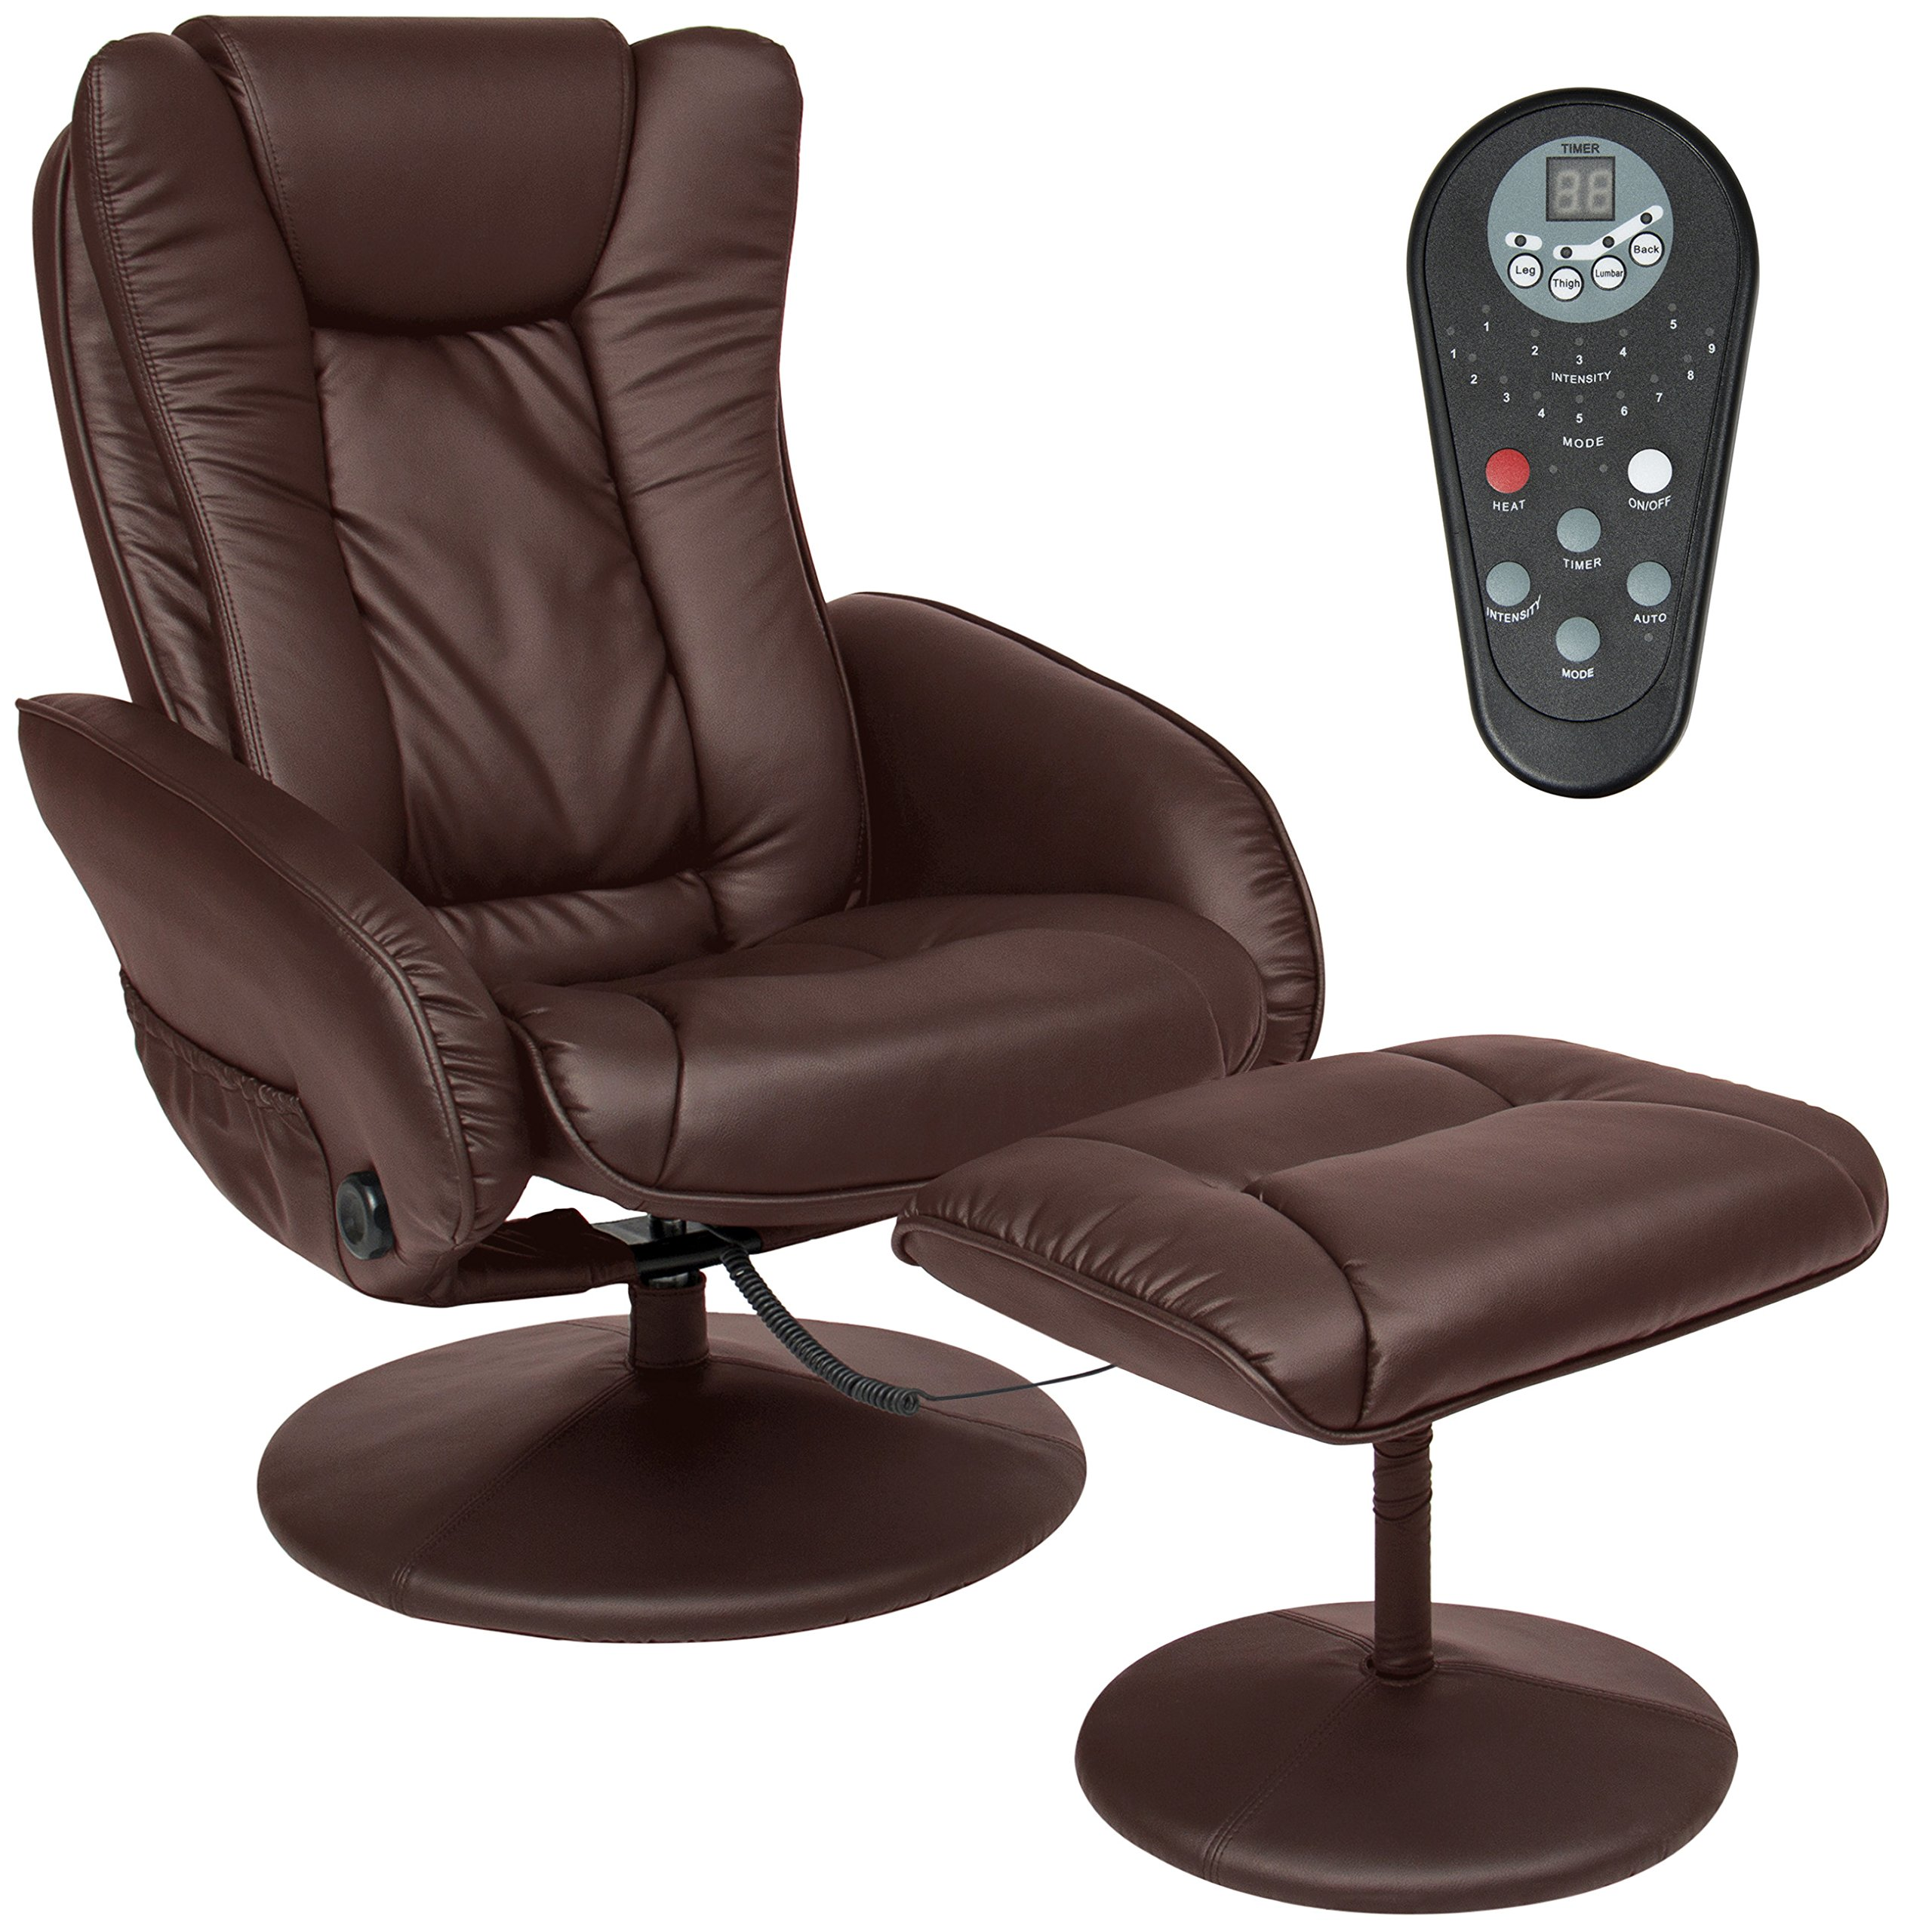 Best Choice Products PU Leather Massage Recliner Ottoman w/ Control, 5 Heat & Massage Modes, 45lbs (Brown)